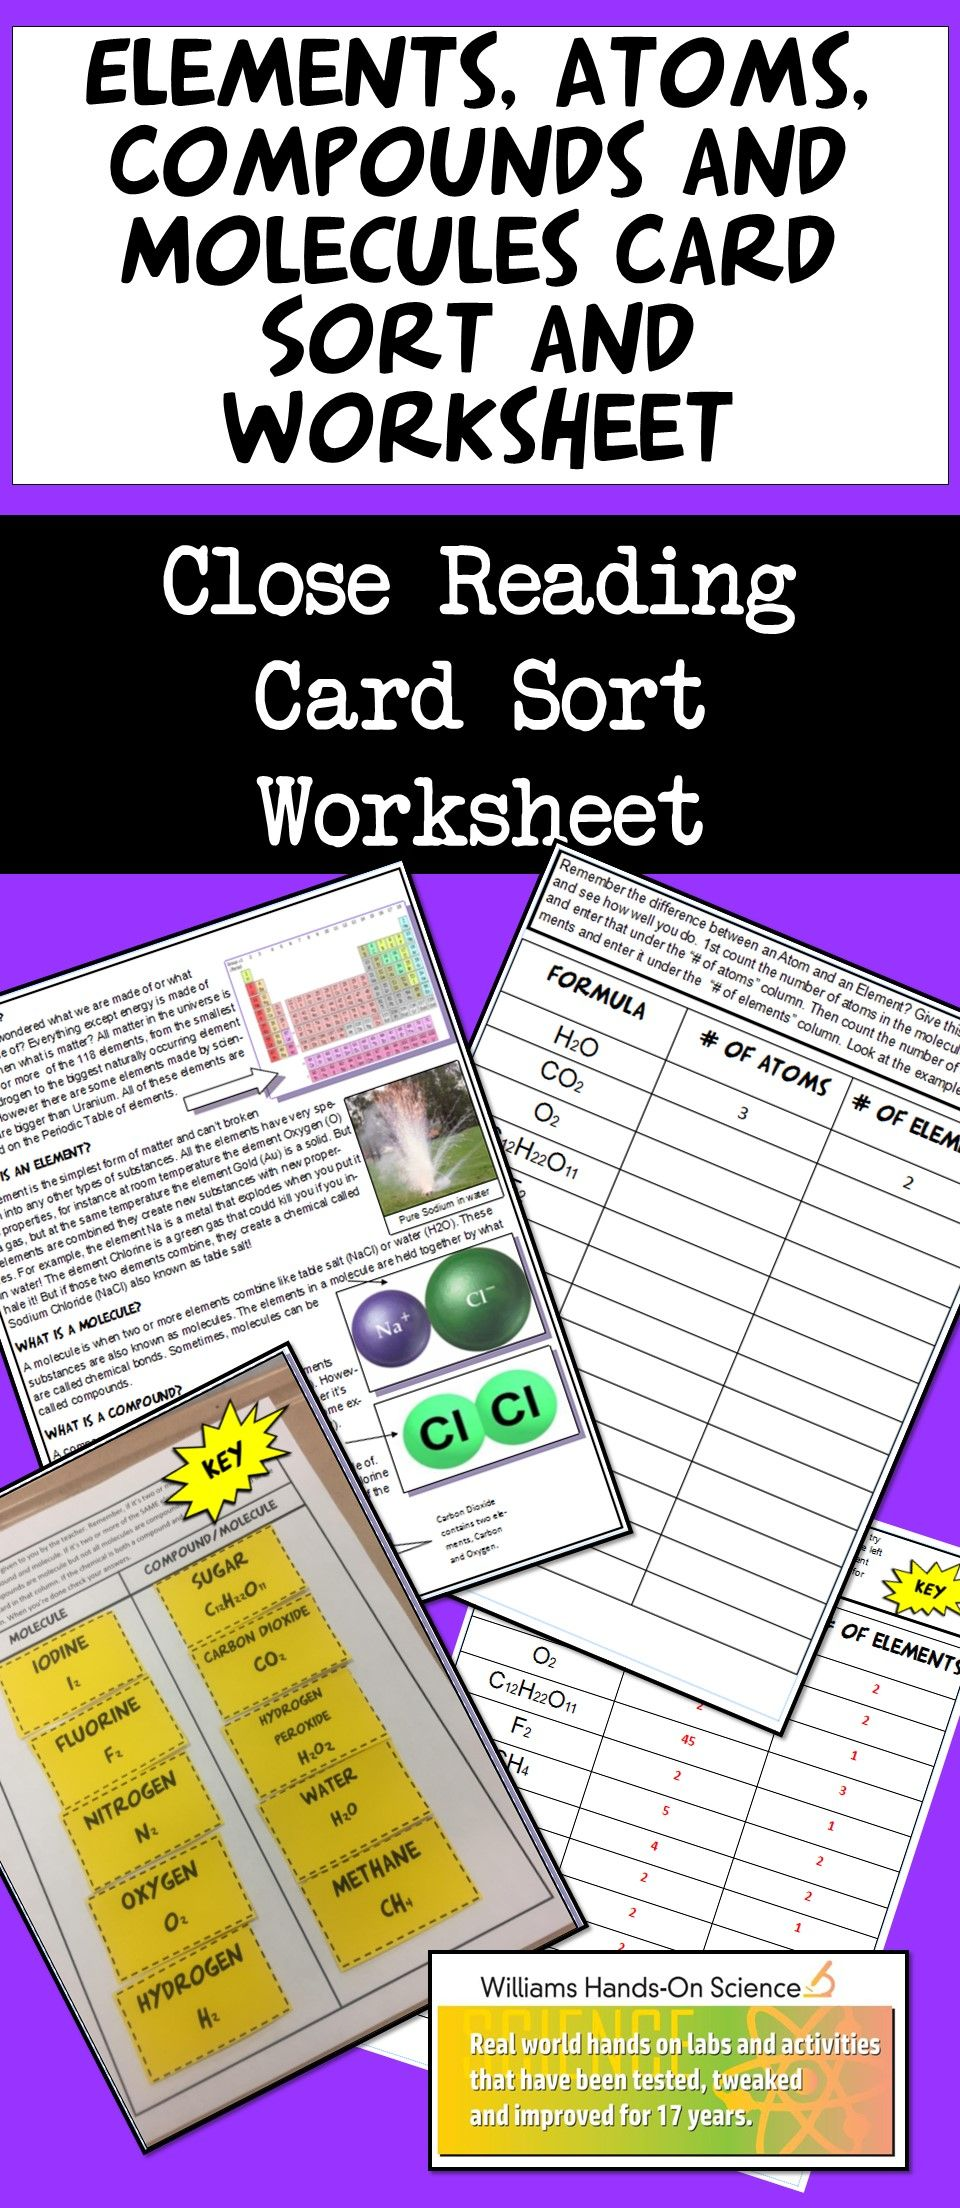 Elements Atoms Compounds And Molecules Card Sort Worksheet And